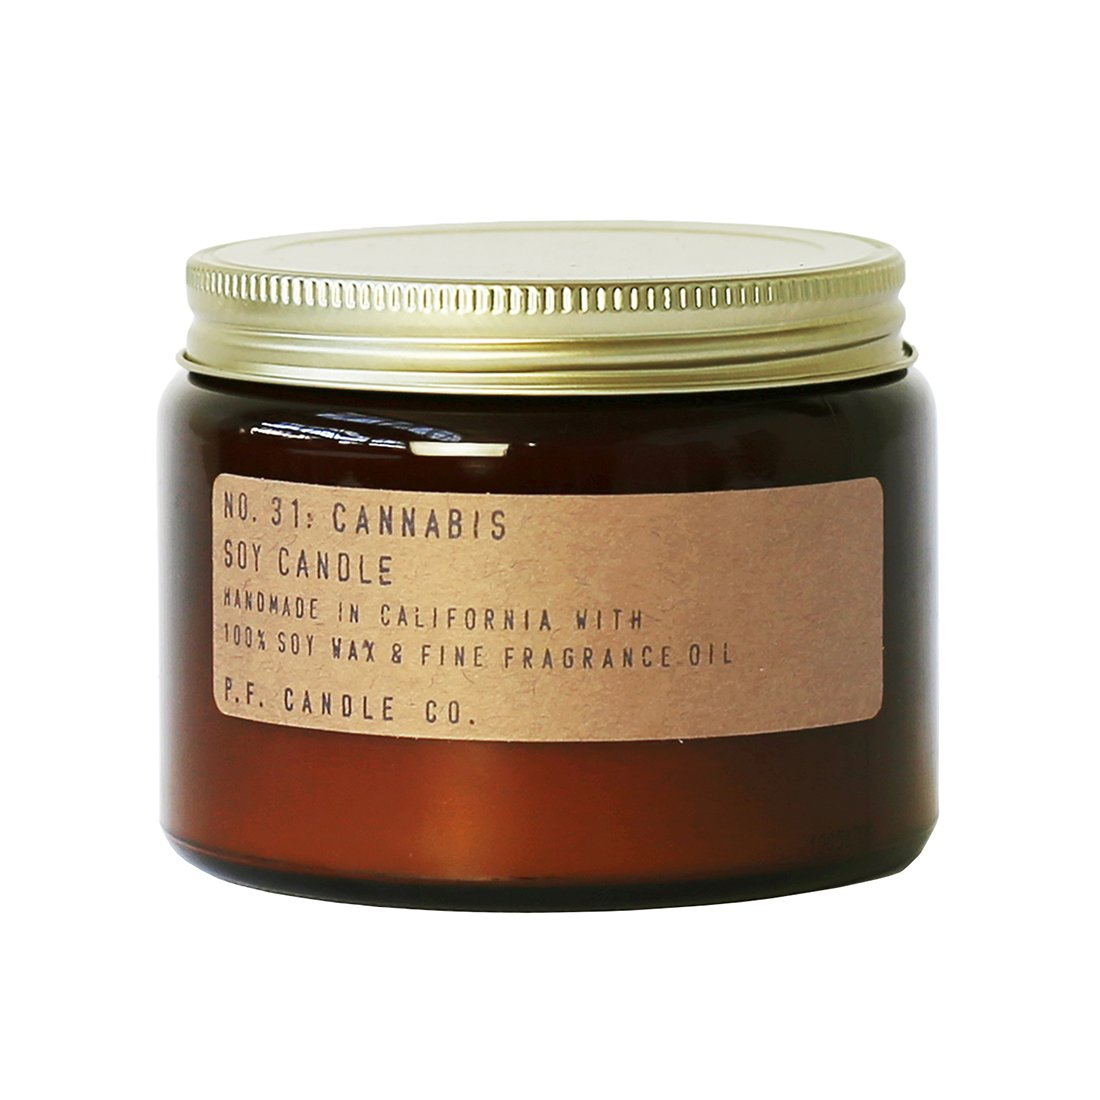 P.F. Candle Co.. - No. 31: Cannabis Candle (Double Wick 14 oz)